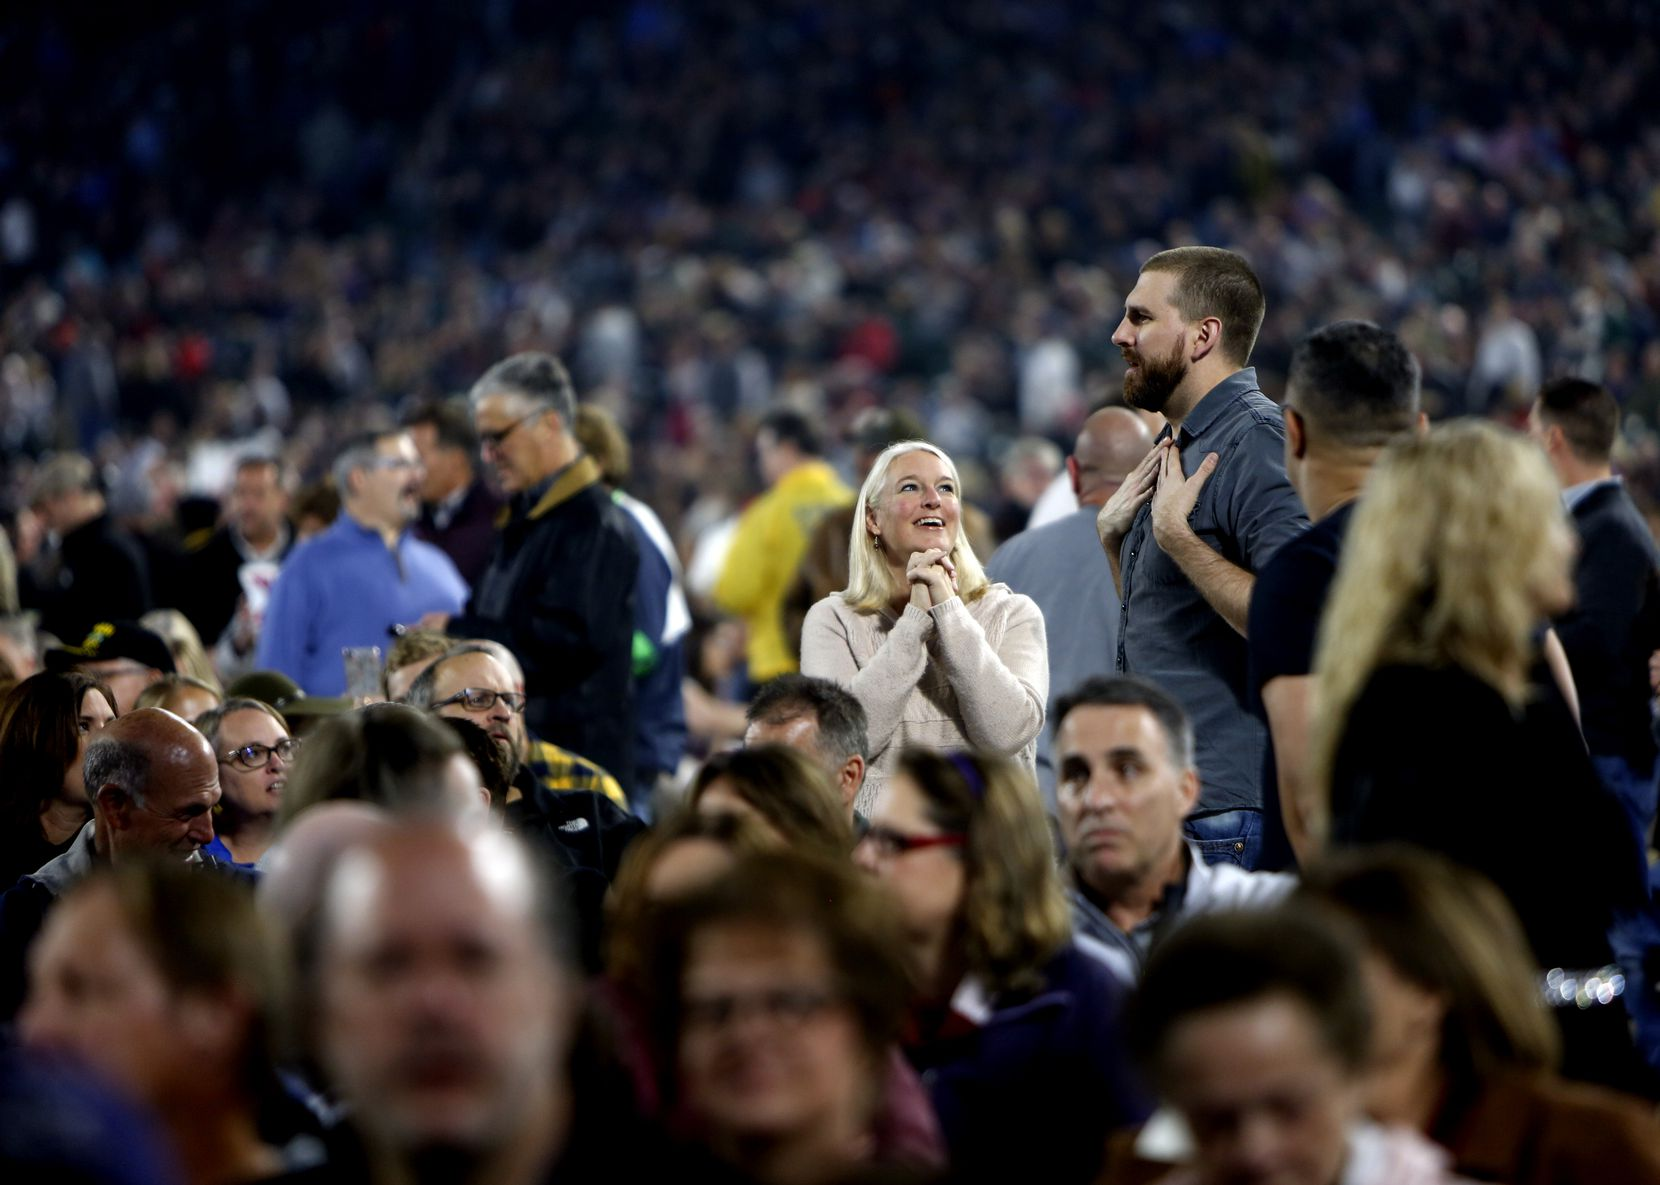 Prior to Billy Joel hitting the stage, fans socialize among a capacity crowd. Billy Joel performed to the delight of fans at Globe Life Park in Arlington on Oct. 12, 2019.